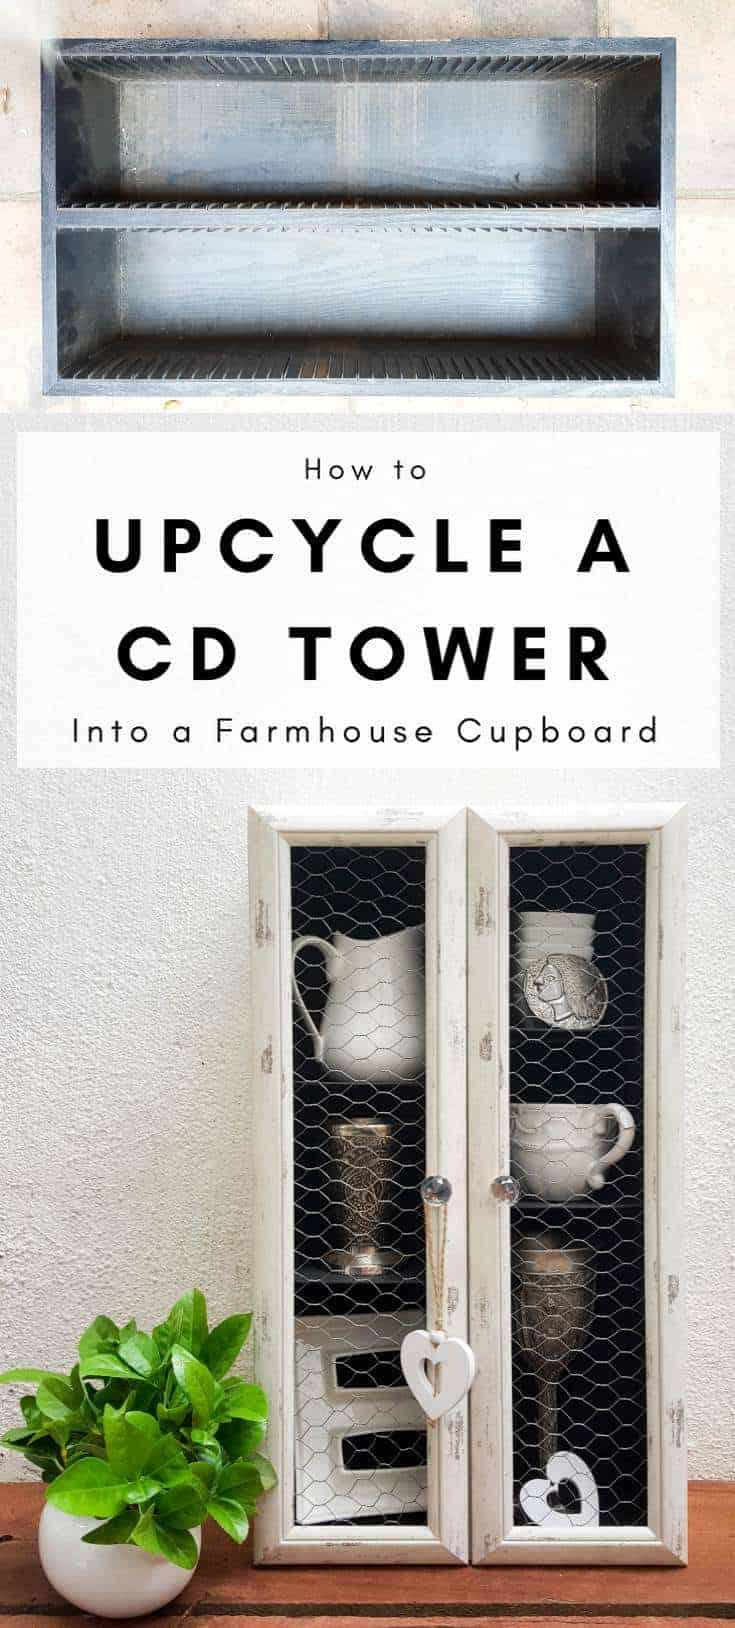 Don't throw that old CD Tower out just yet. You can upcycle it into this rustic farmhouse cabinet. It's perfect for all those knick knacks and other keepsakes #CDTower #Upcycle #Repurpose #DIYHomeDecor #DIYTutorial